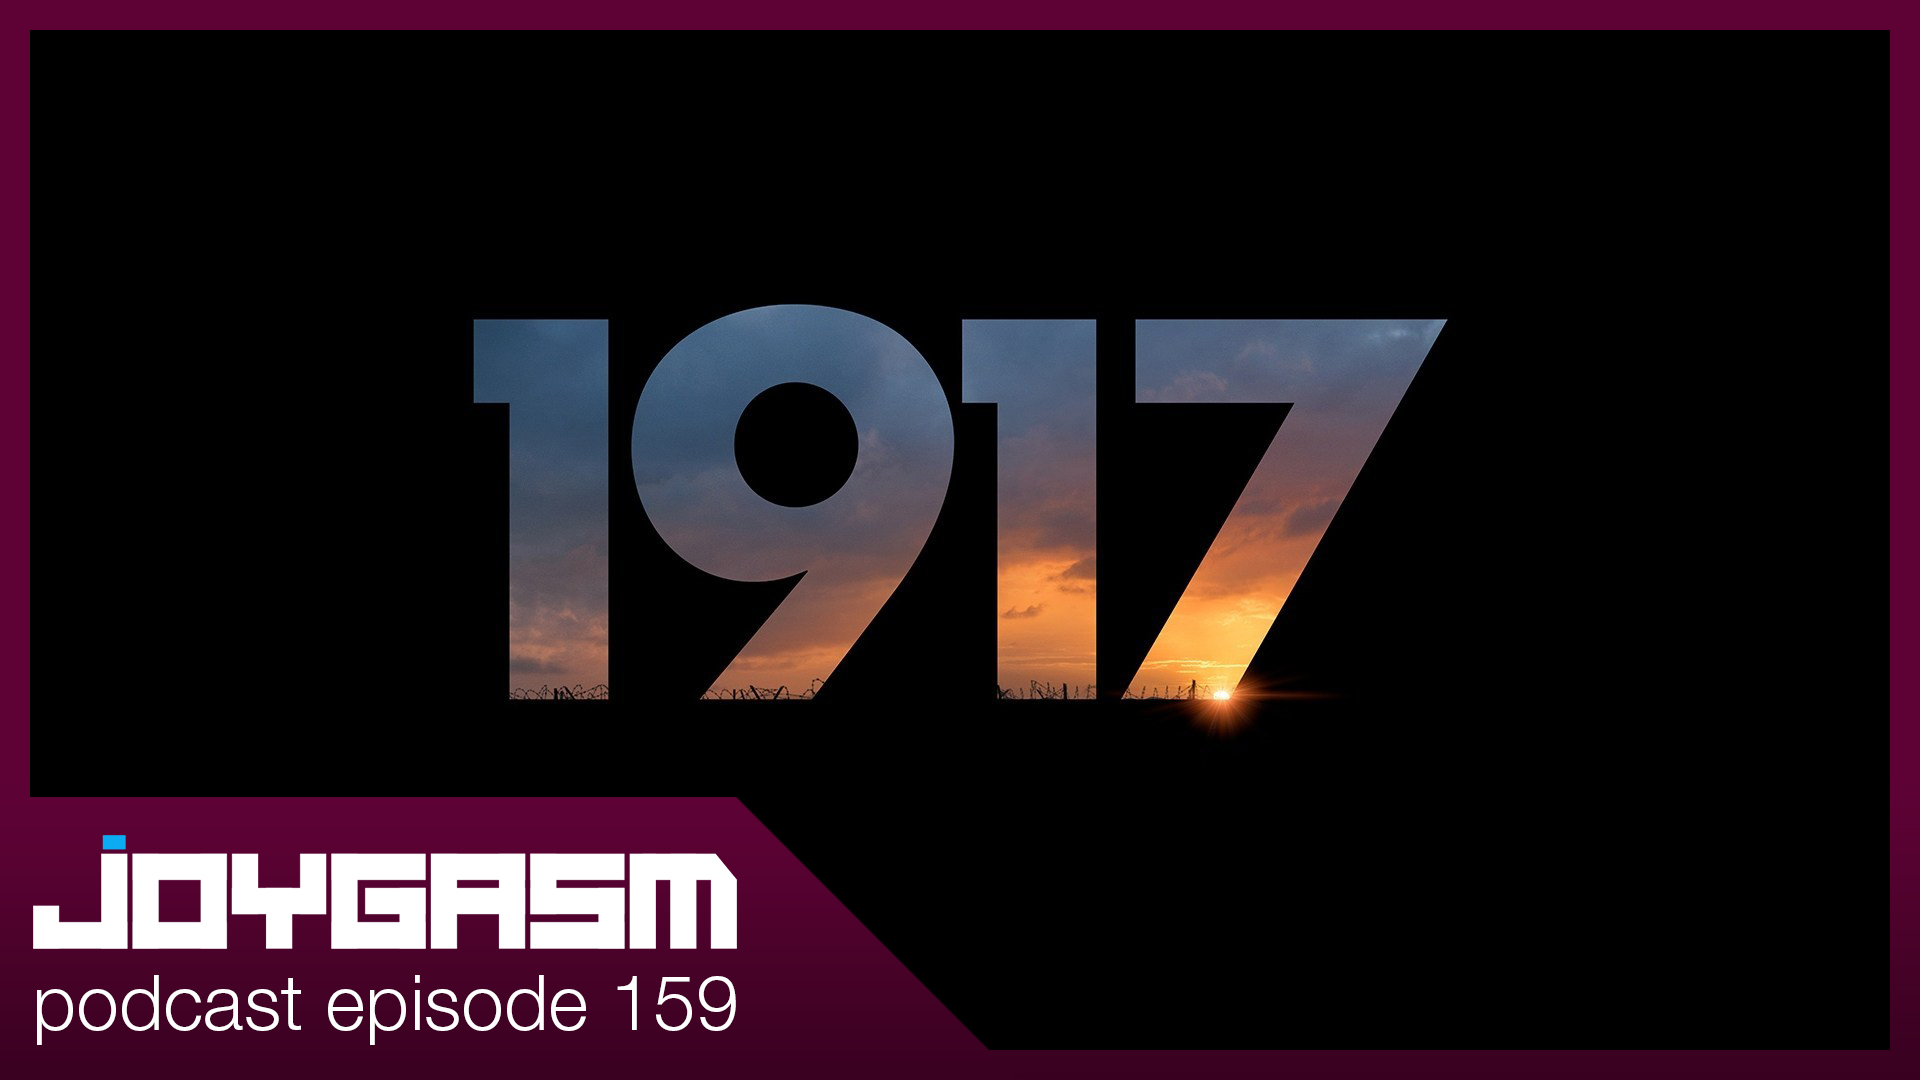 Ep. 159: 1917 Movie Review, Oscar Predictions, & More